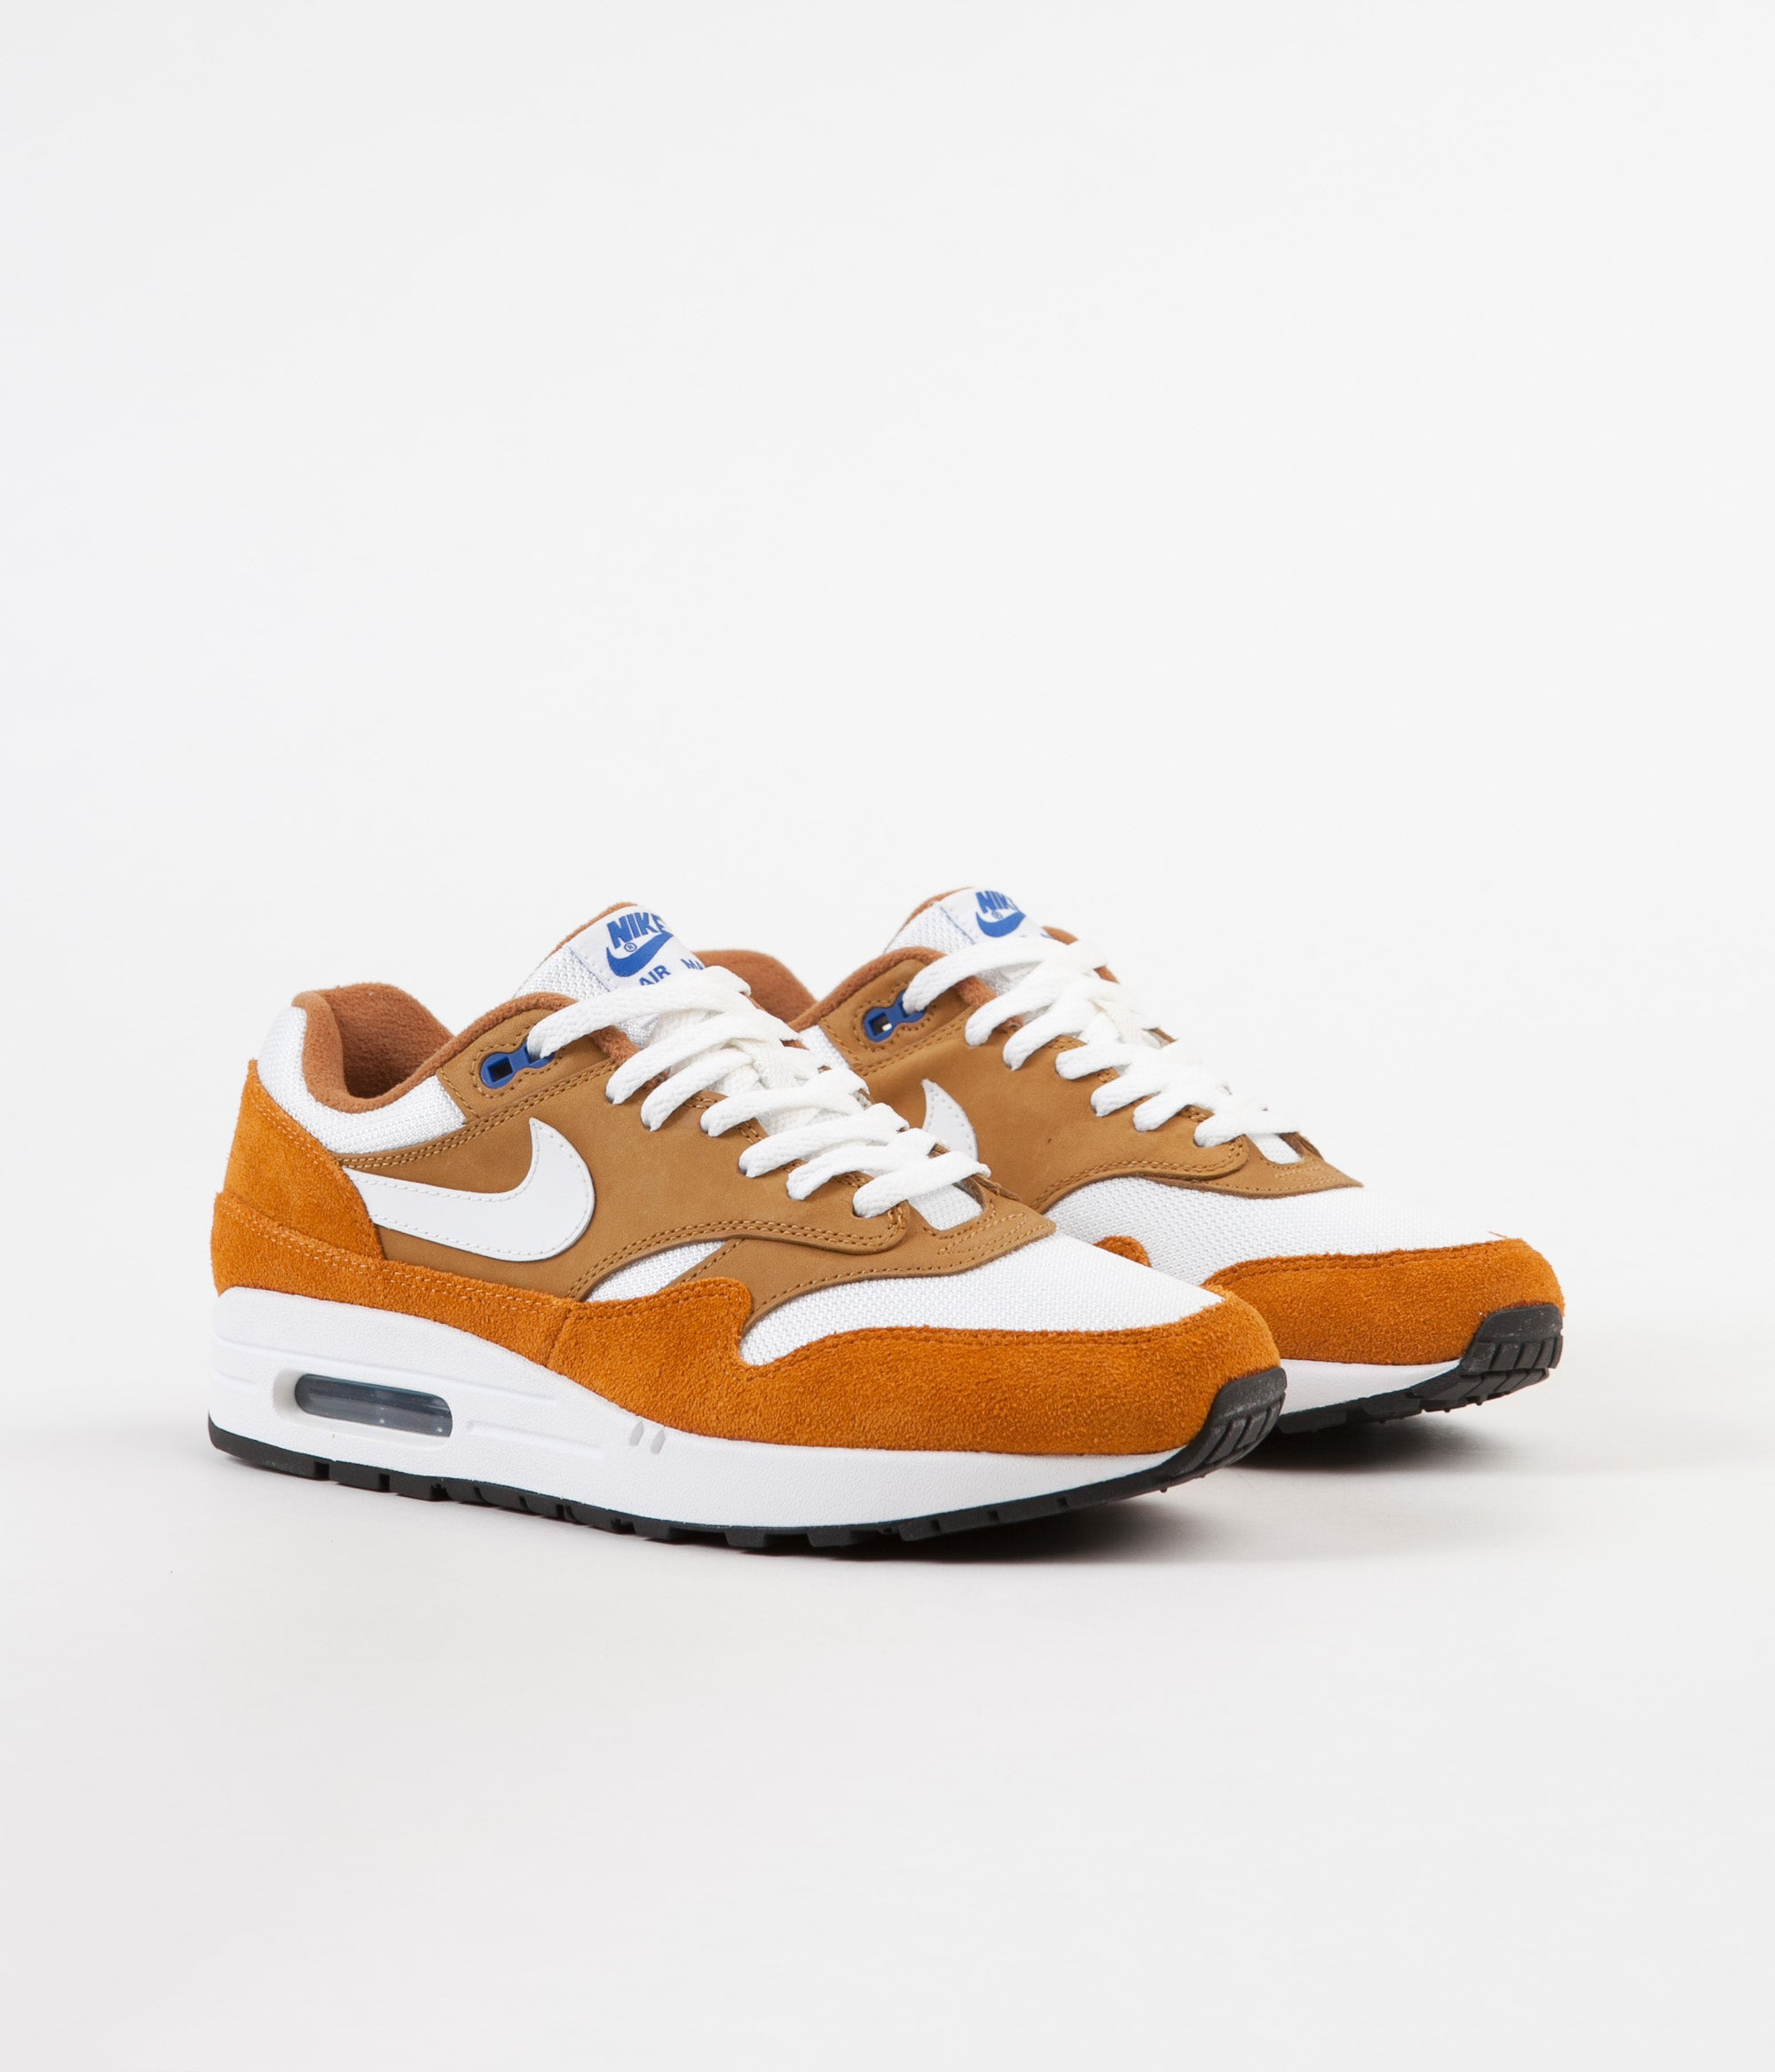 heet On Feet: atmos x Nike Air Max 1 Curry . te koop On Feet